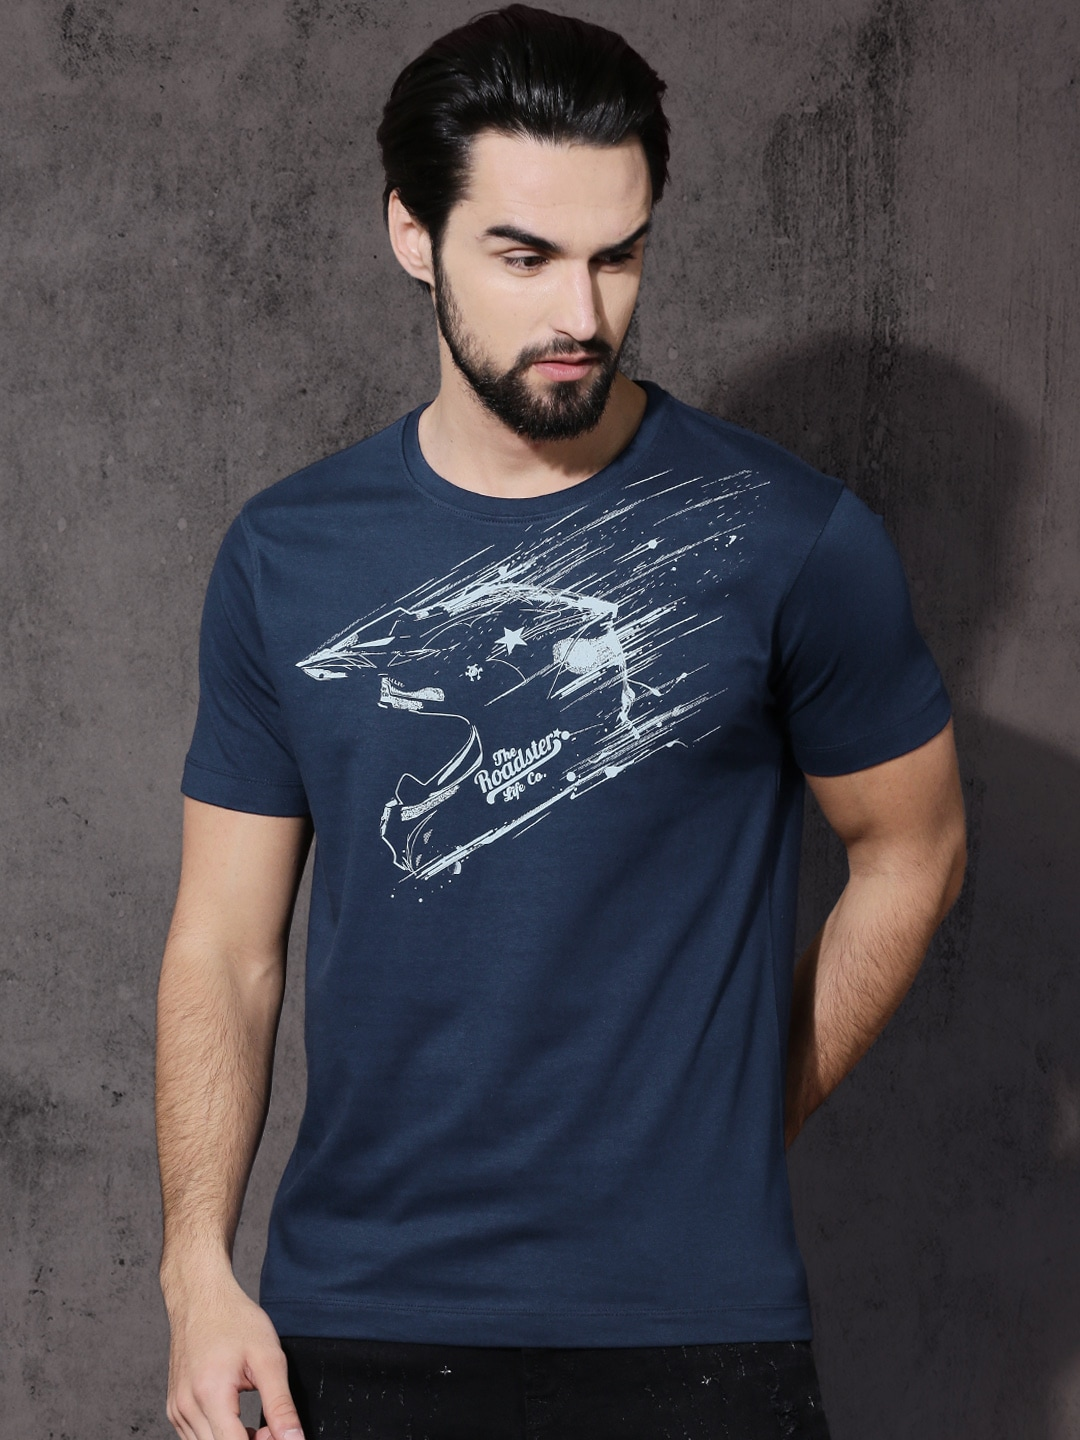 a1465bf2c9b6 Men T-Shirts - Buy T-shirts for Men Online in India